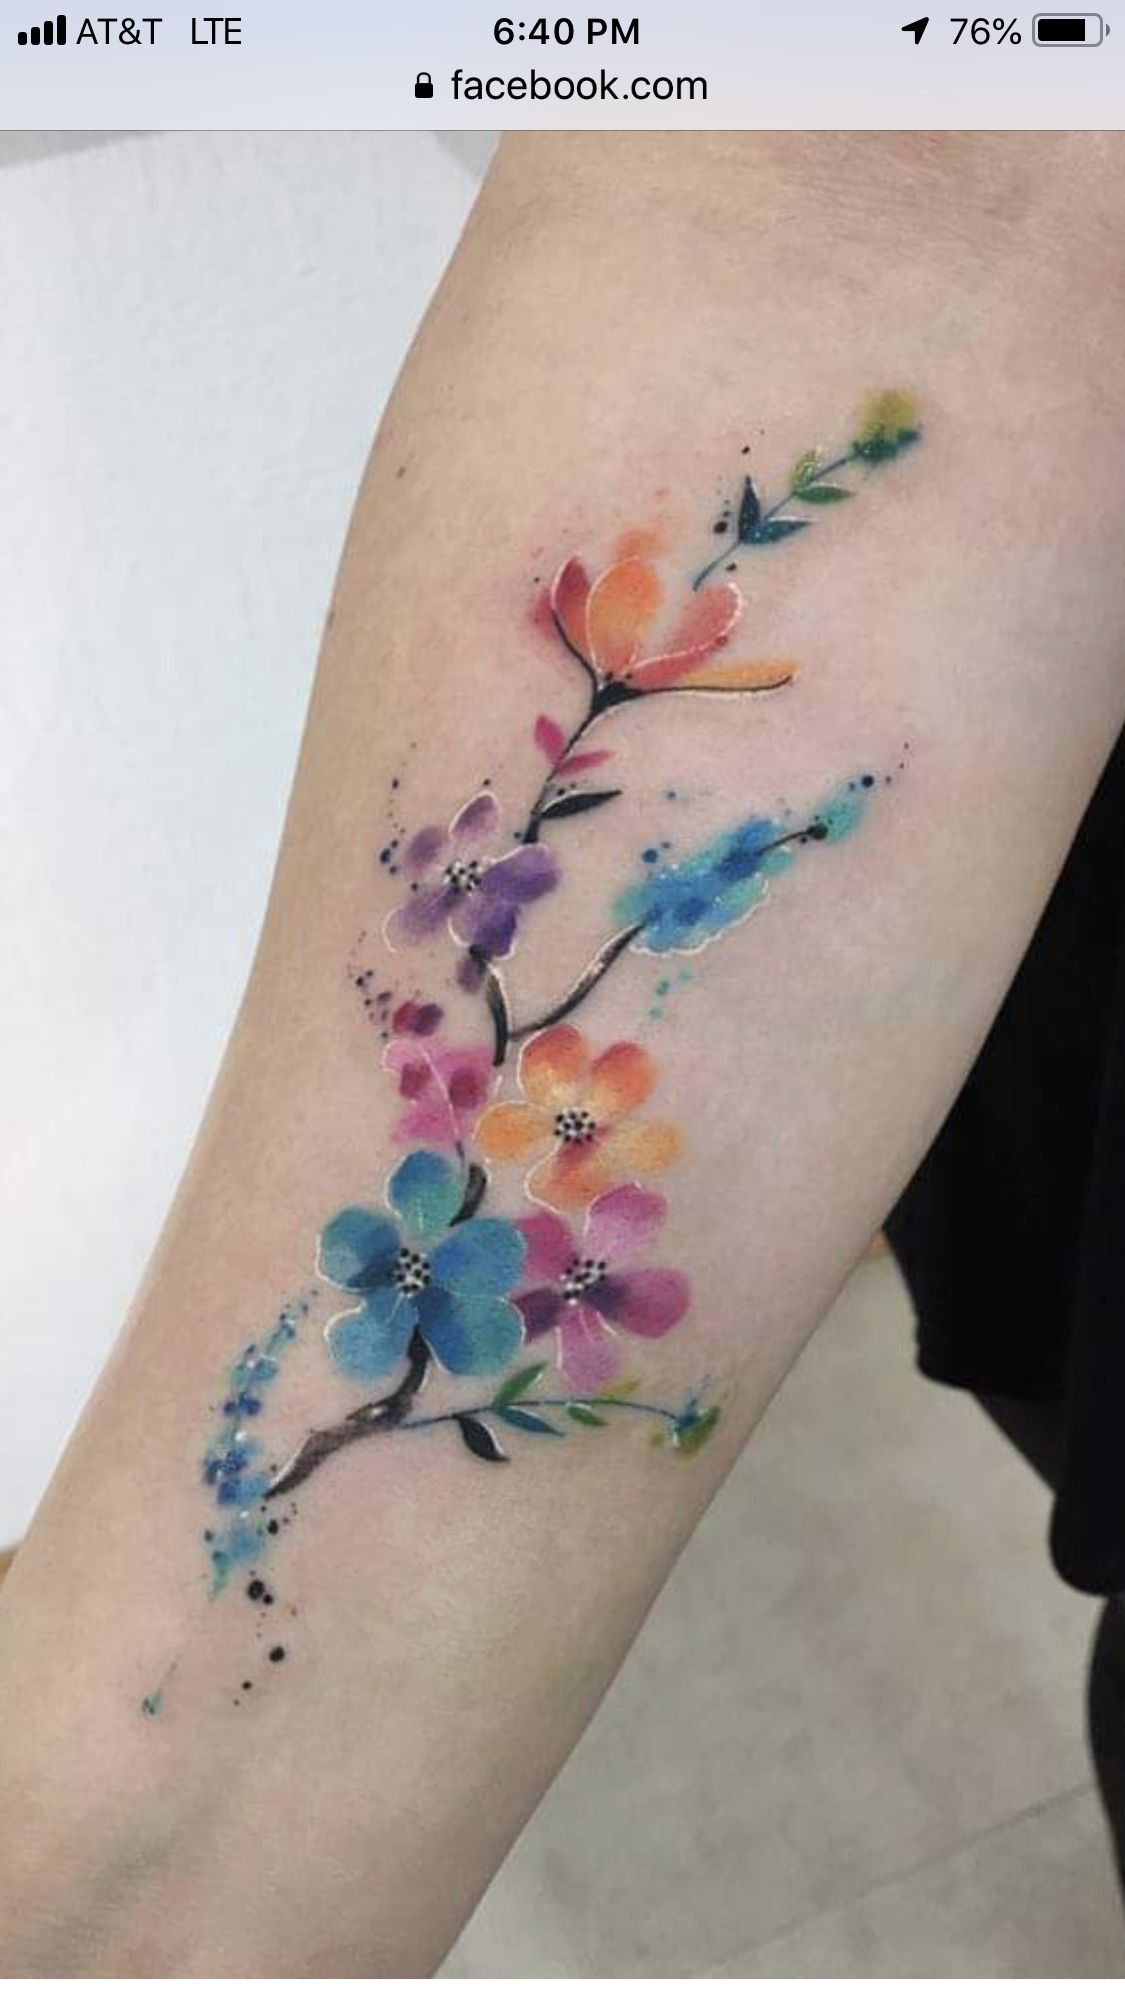 19++ Amazing Temporary tattoos for adults near me ideas